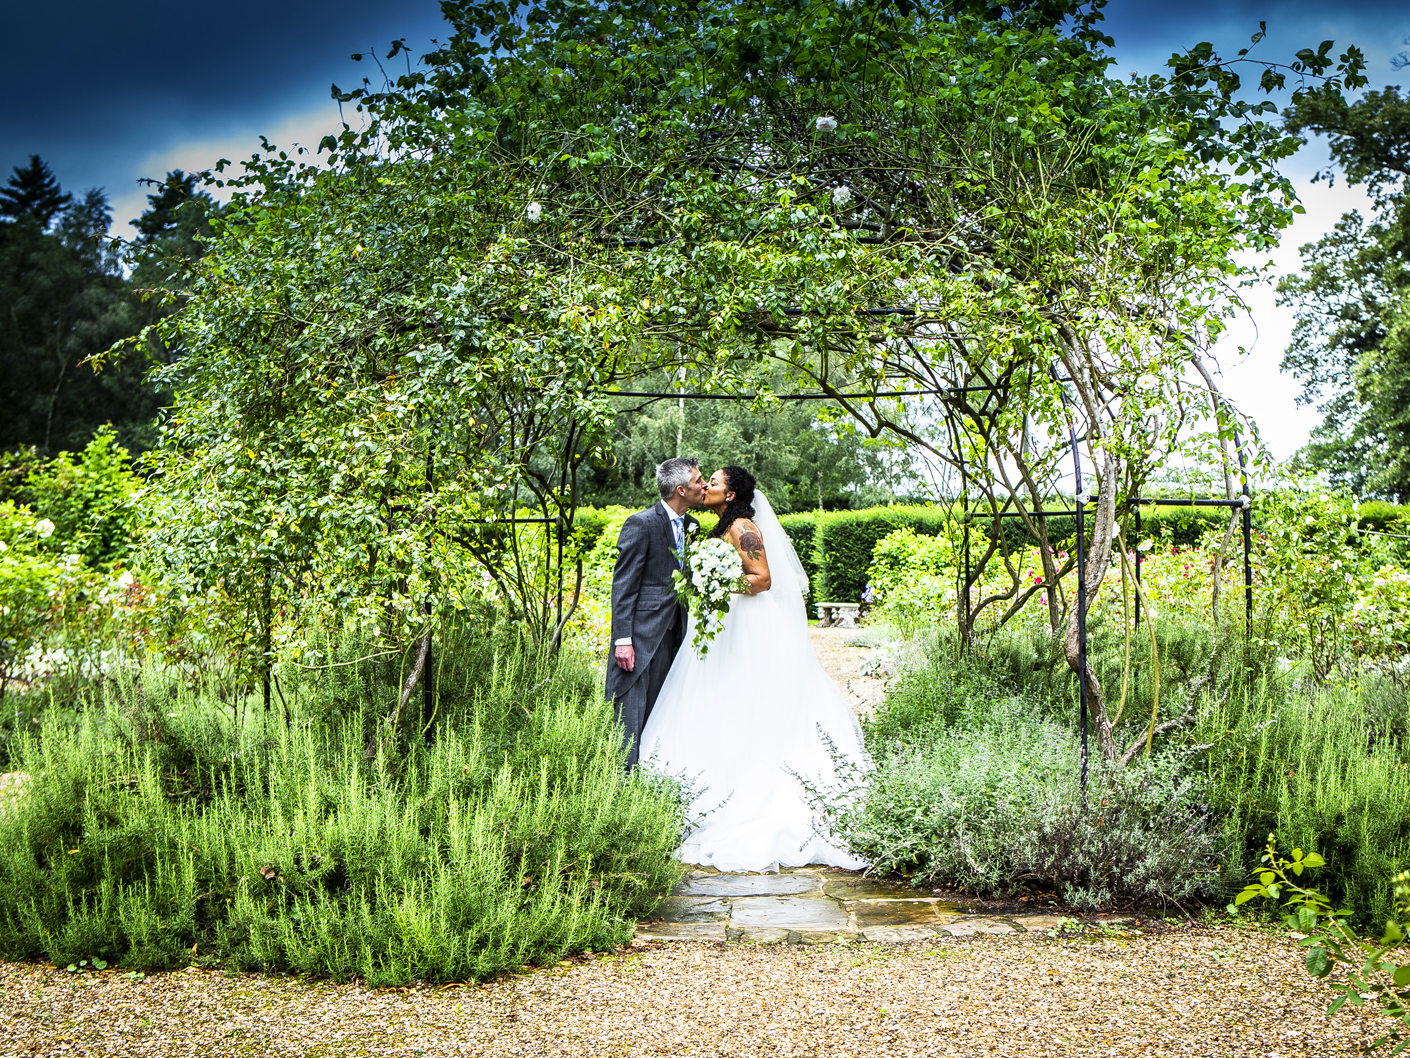 wedding-photography-of-the-bride-and-groom-at-adlington-hall-macclesfield-cheshire